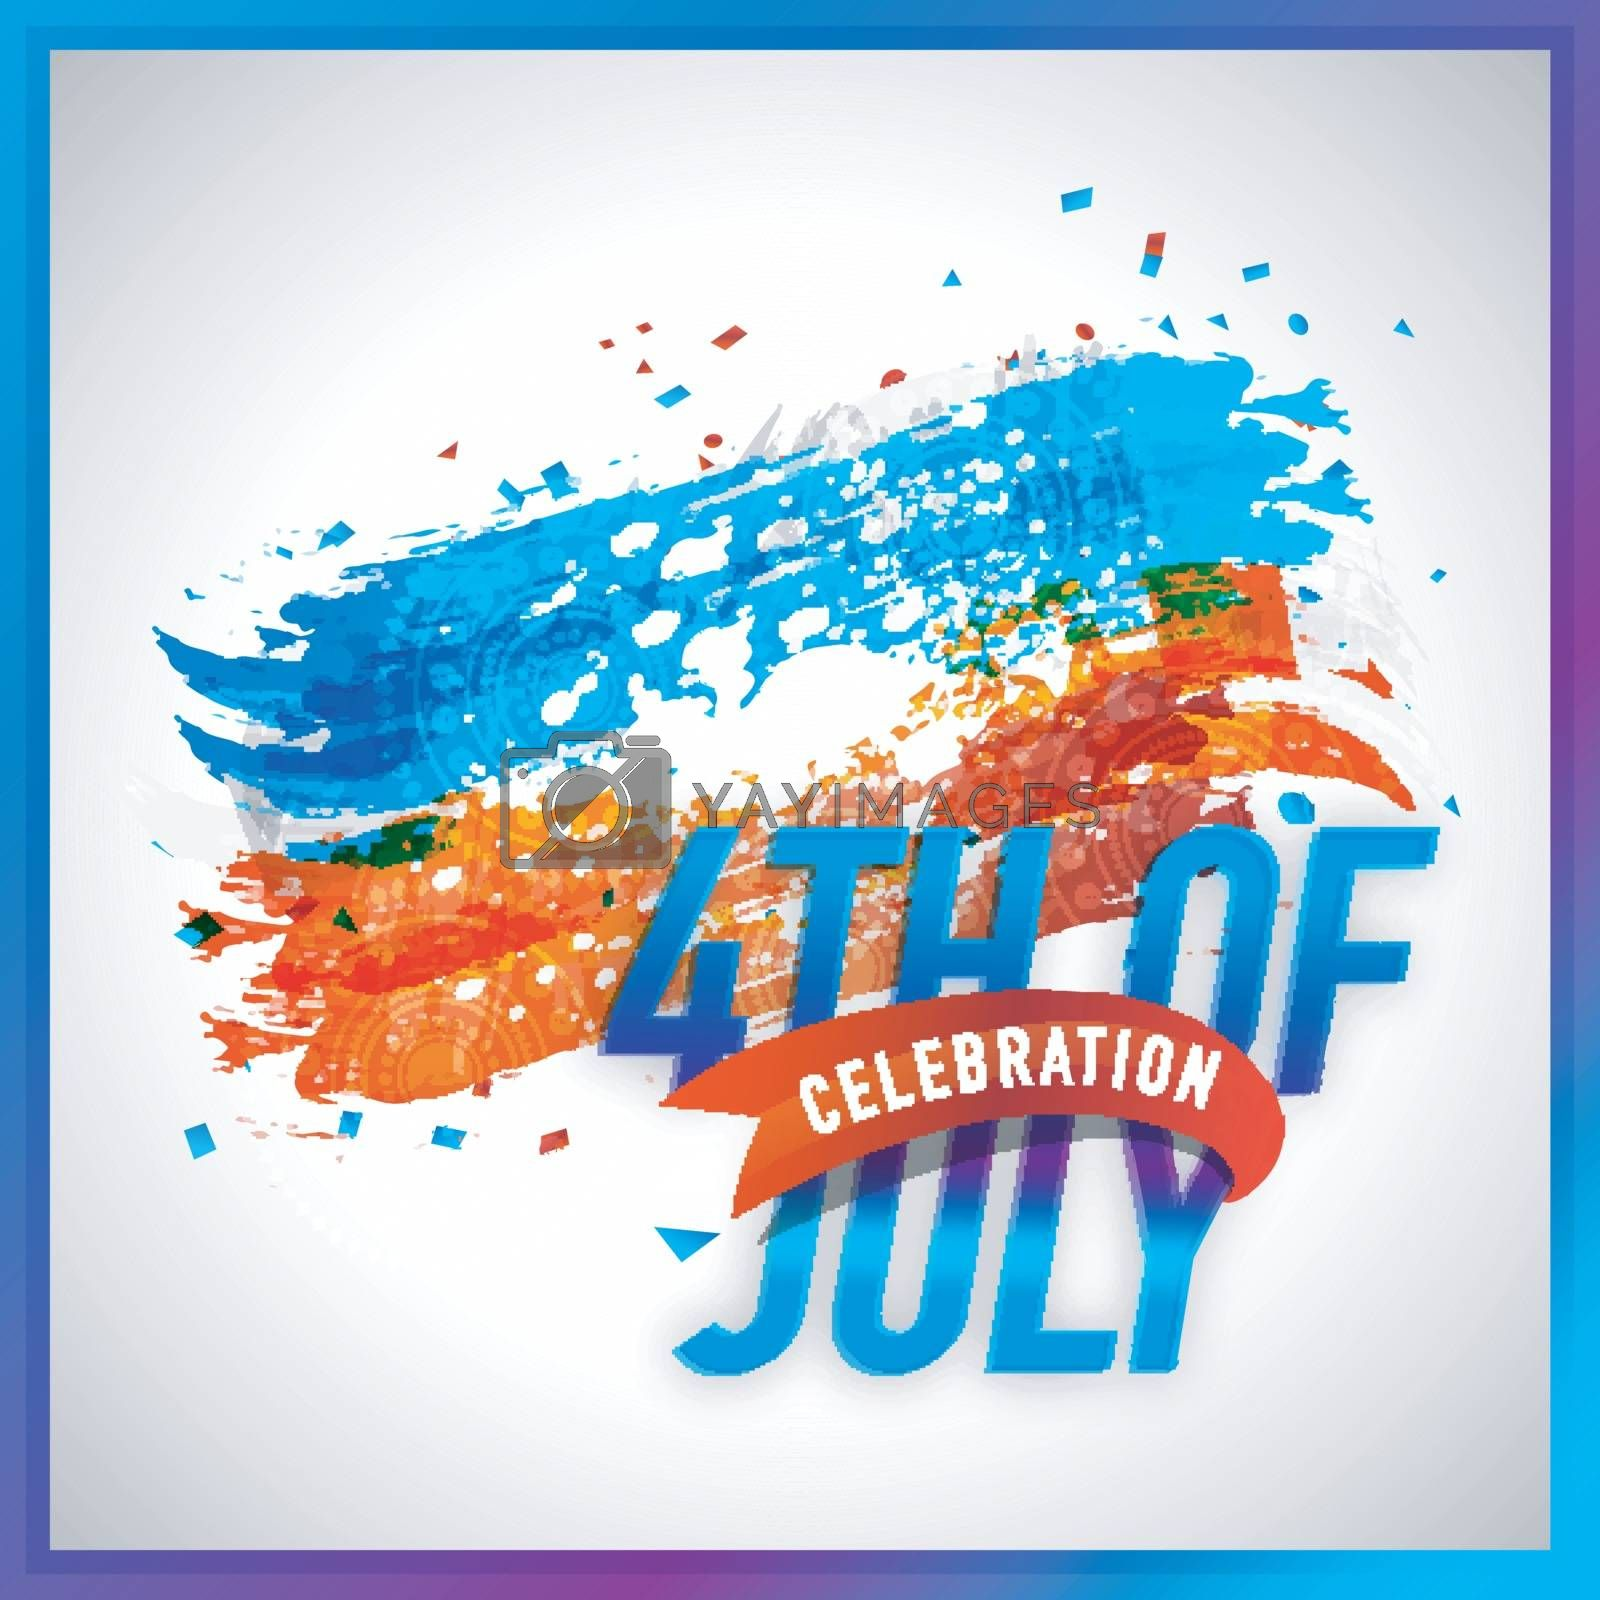 4th of July celebration abstract brush strokes background in American Flag colors. Poster, Banner or Flyer design for Independence Day.